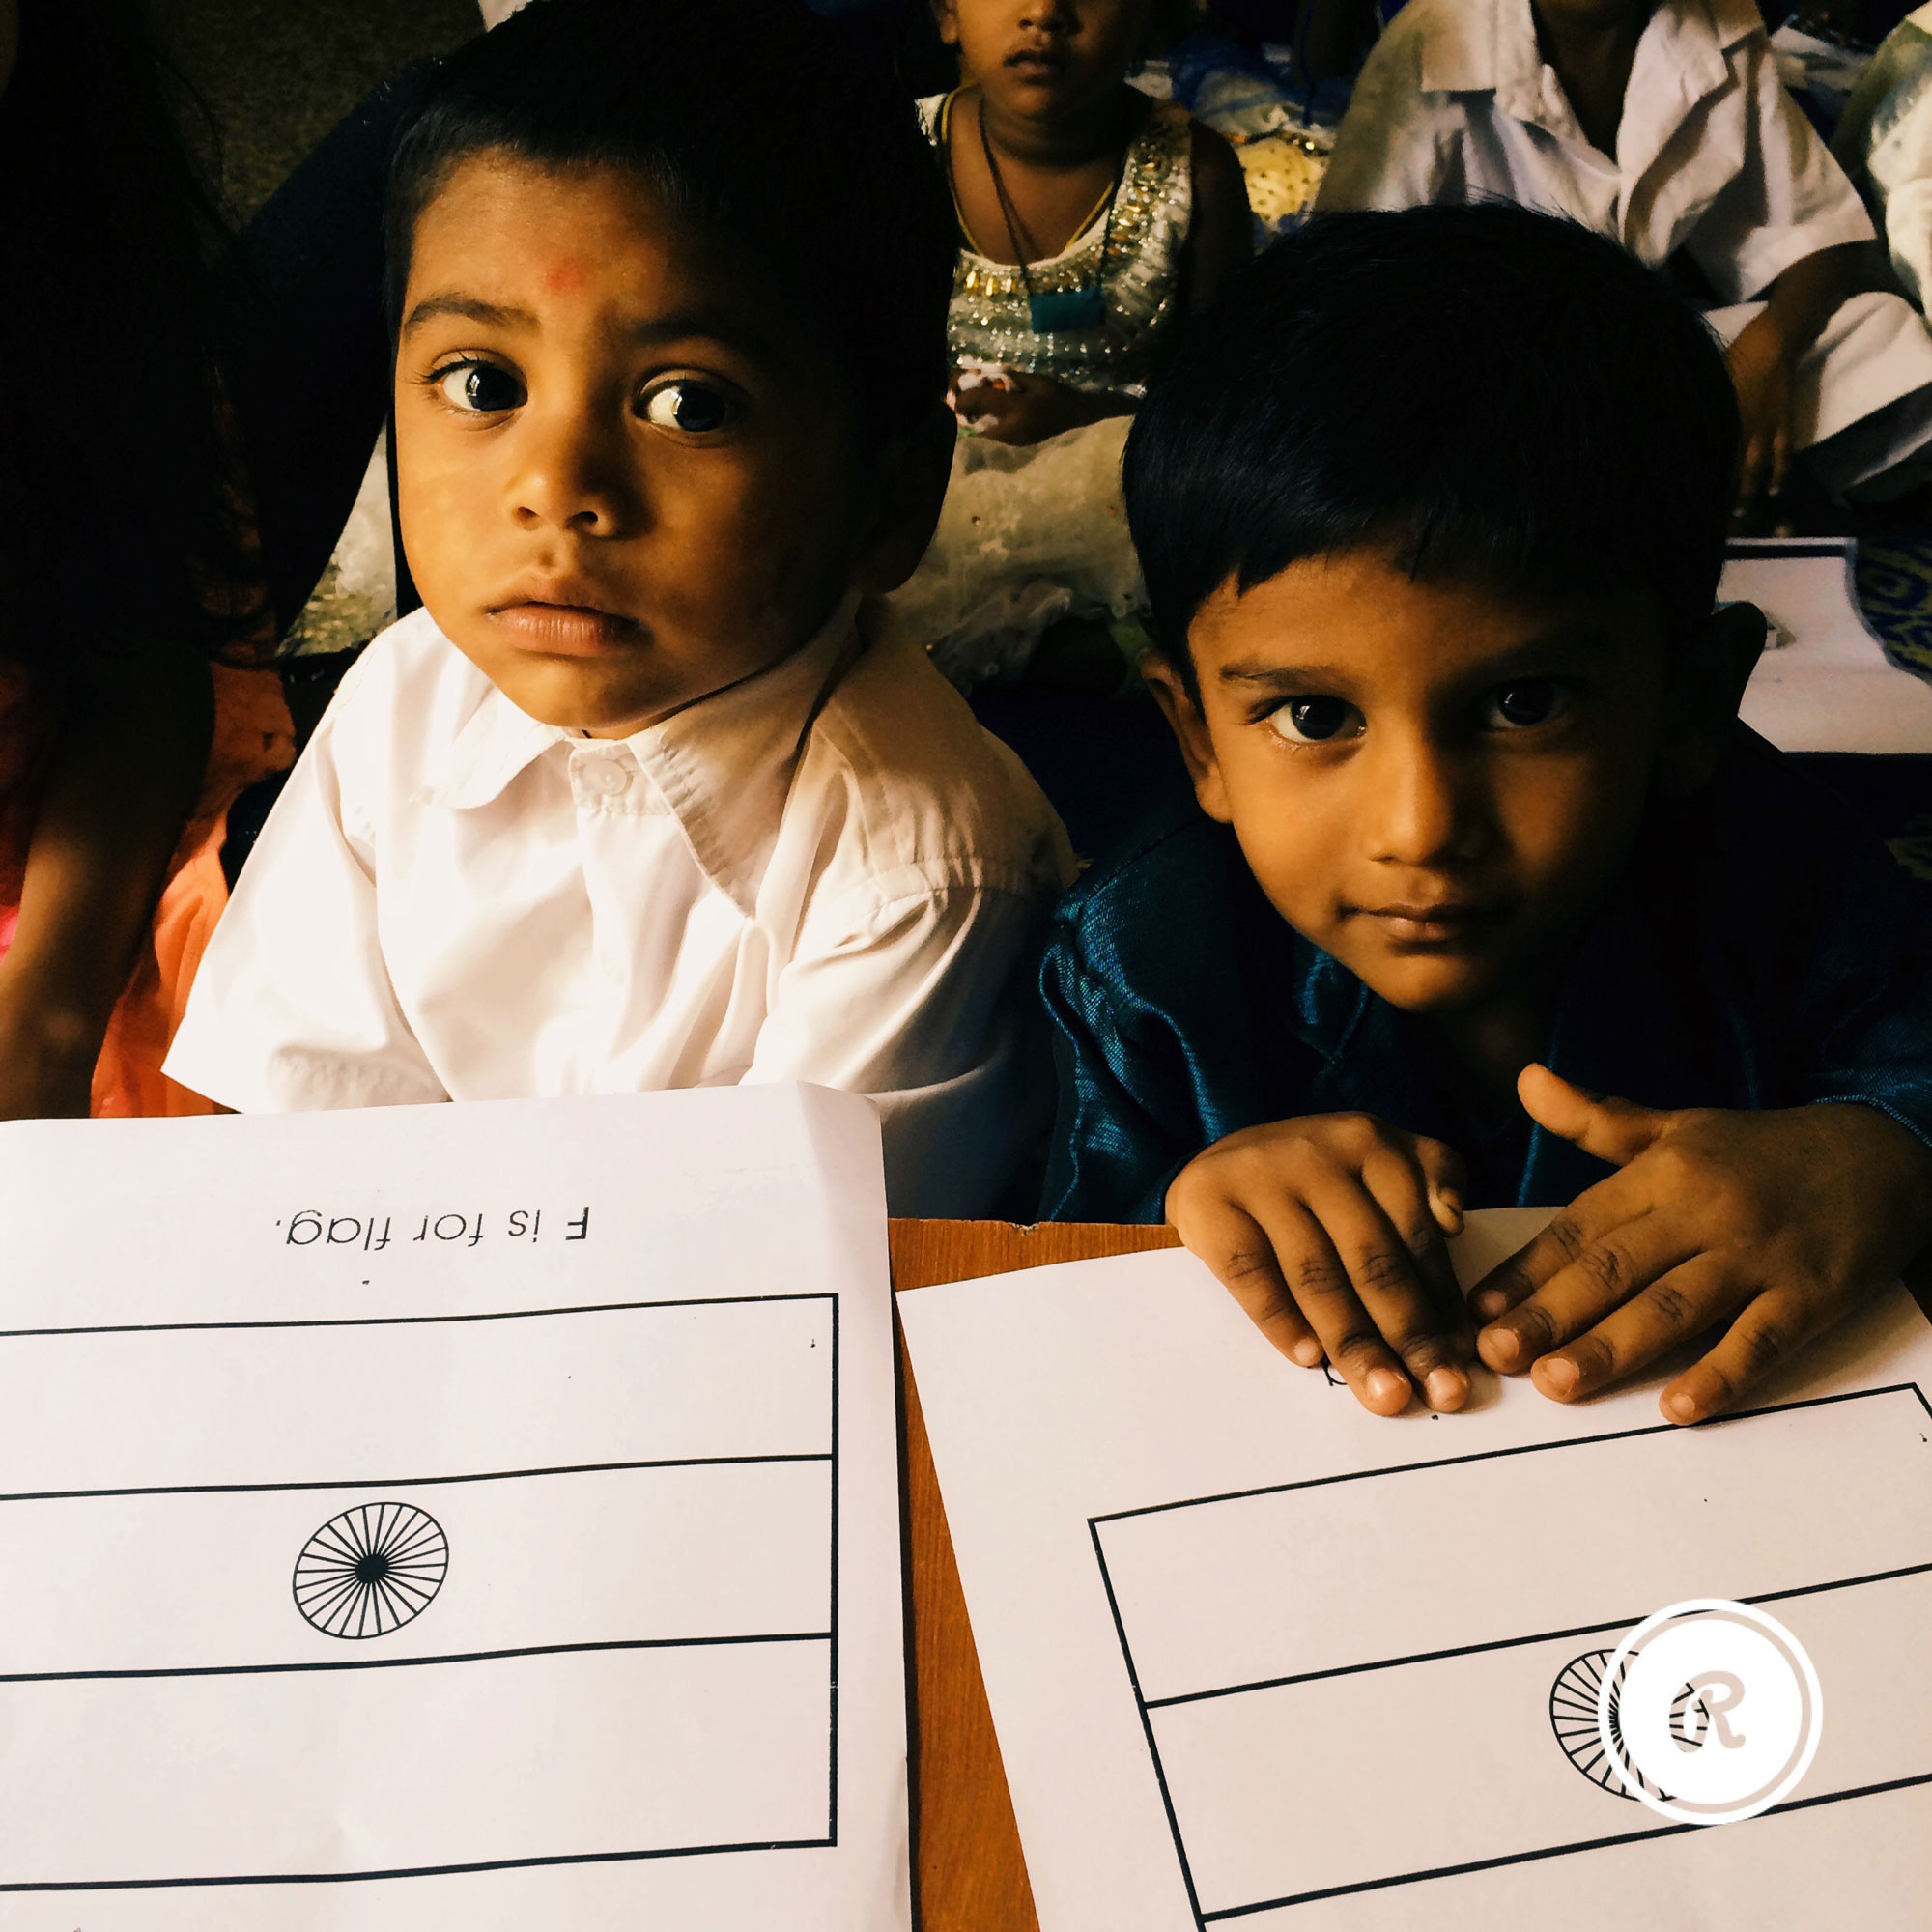 Home | The Freedom Project India